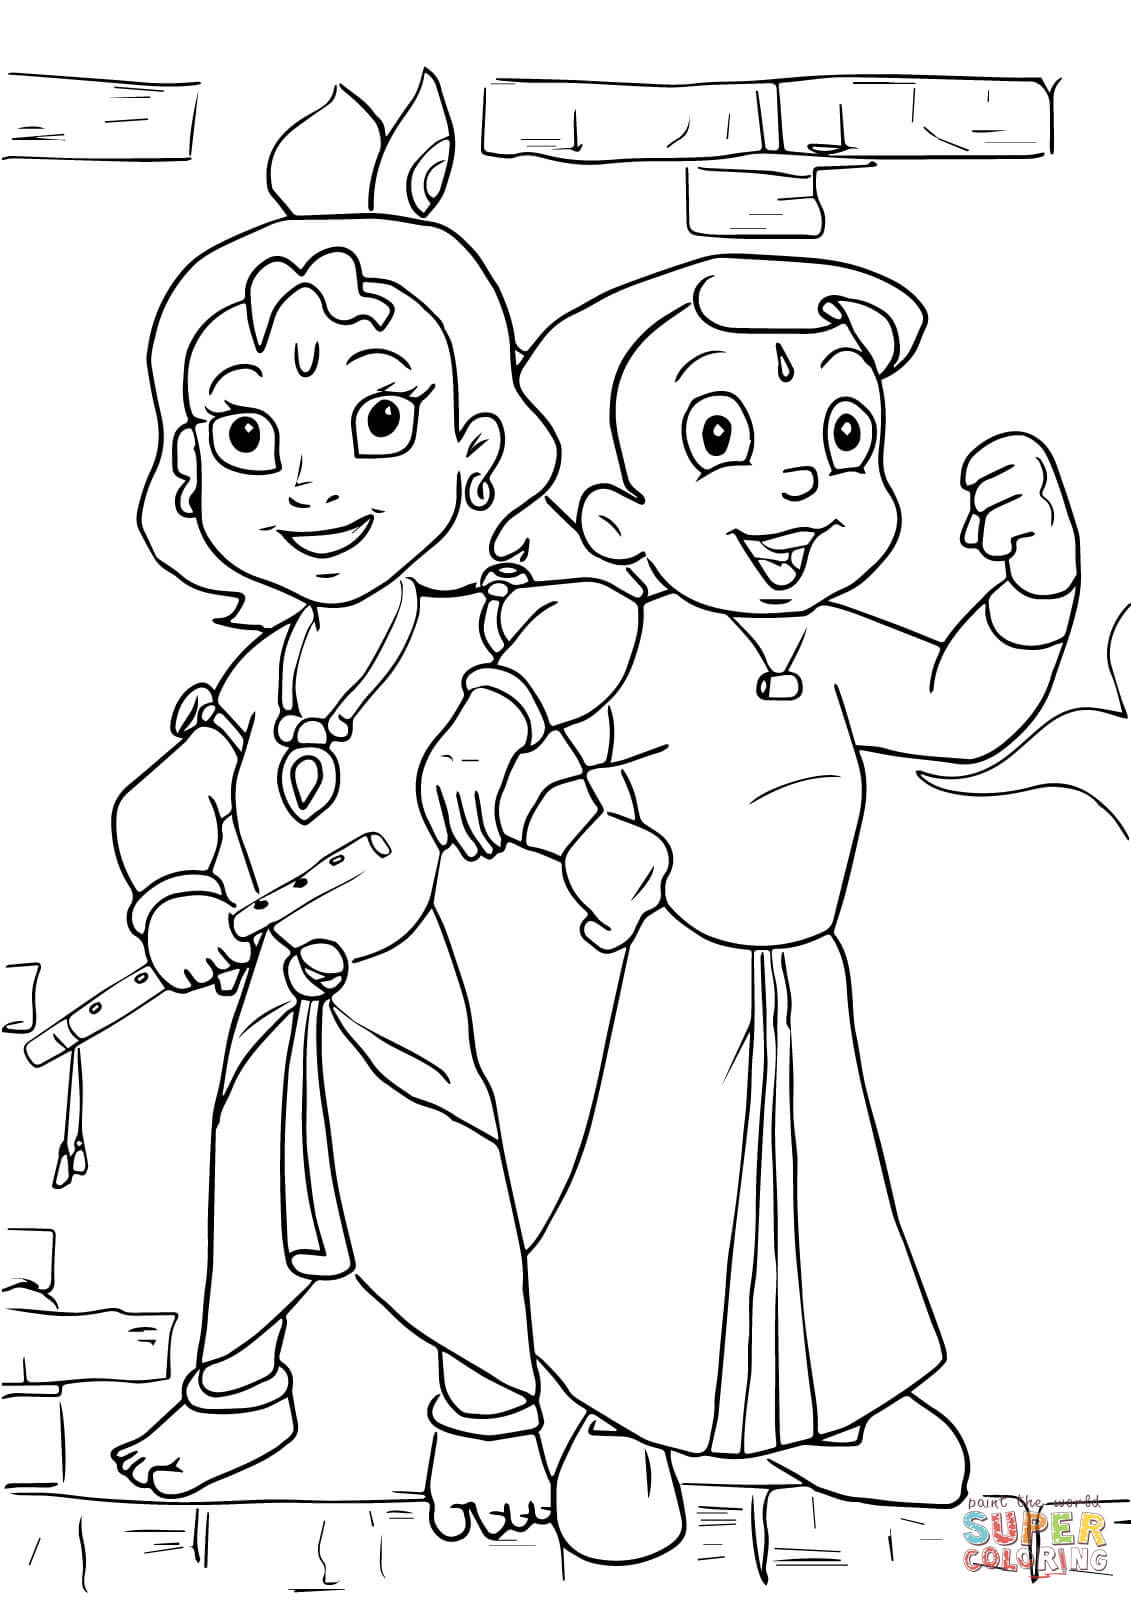 Outline Drawing For Colouring At Getdrawings